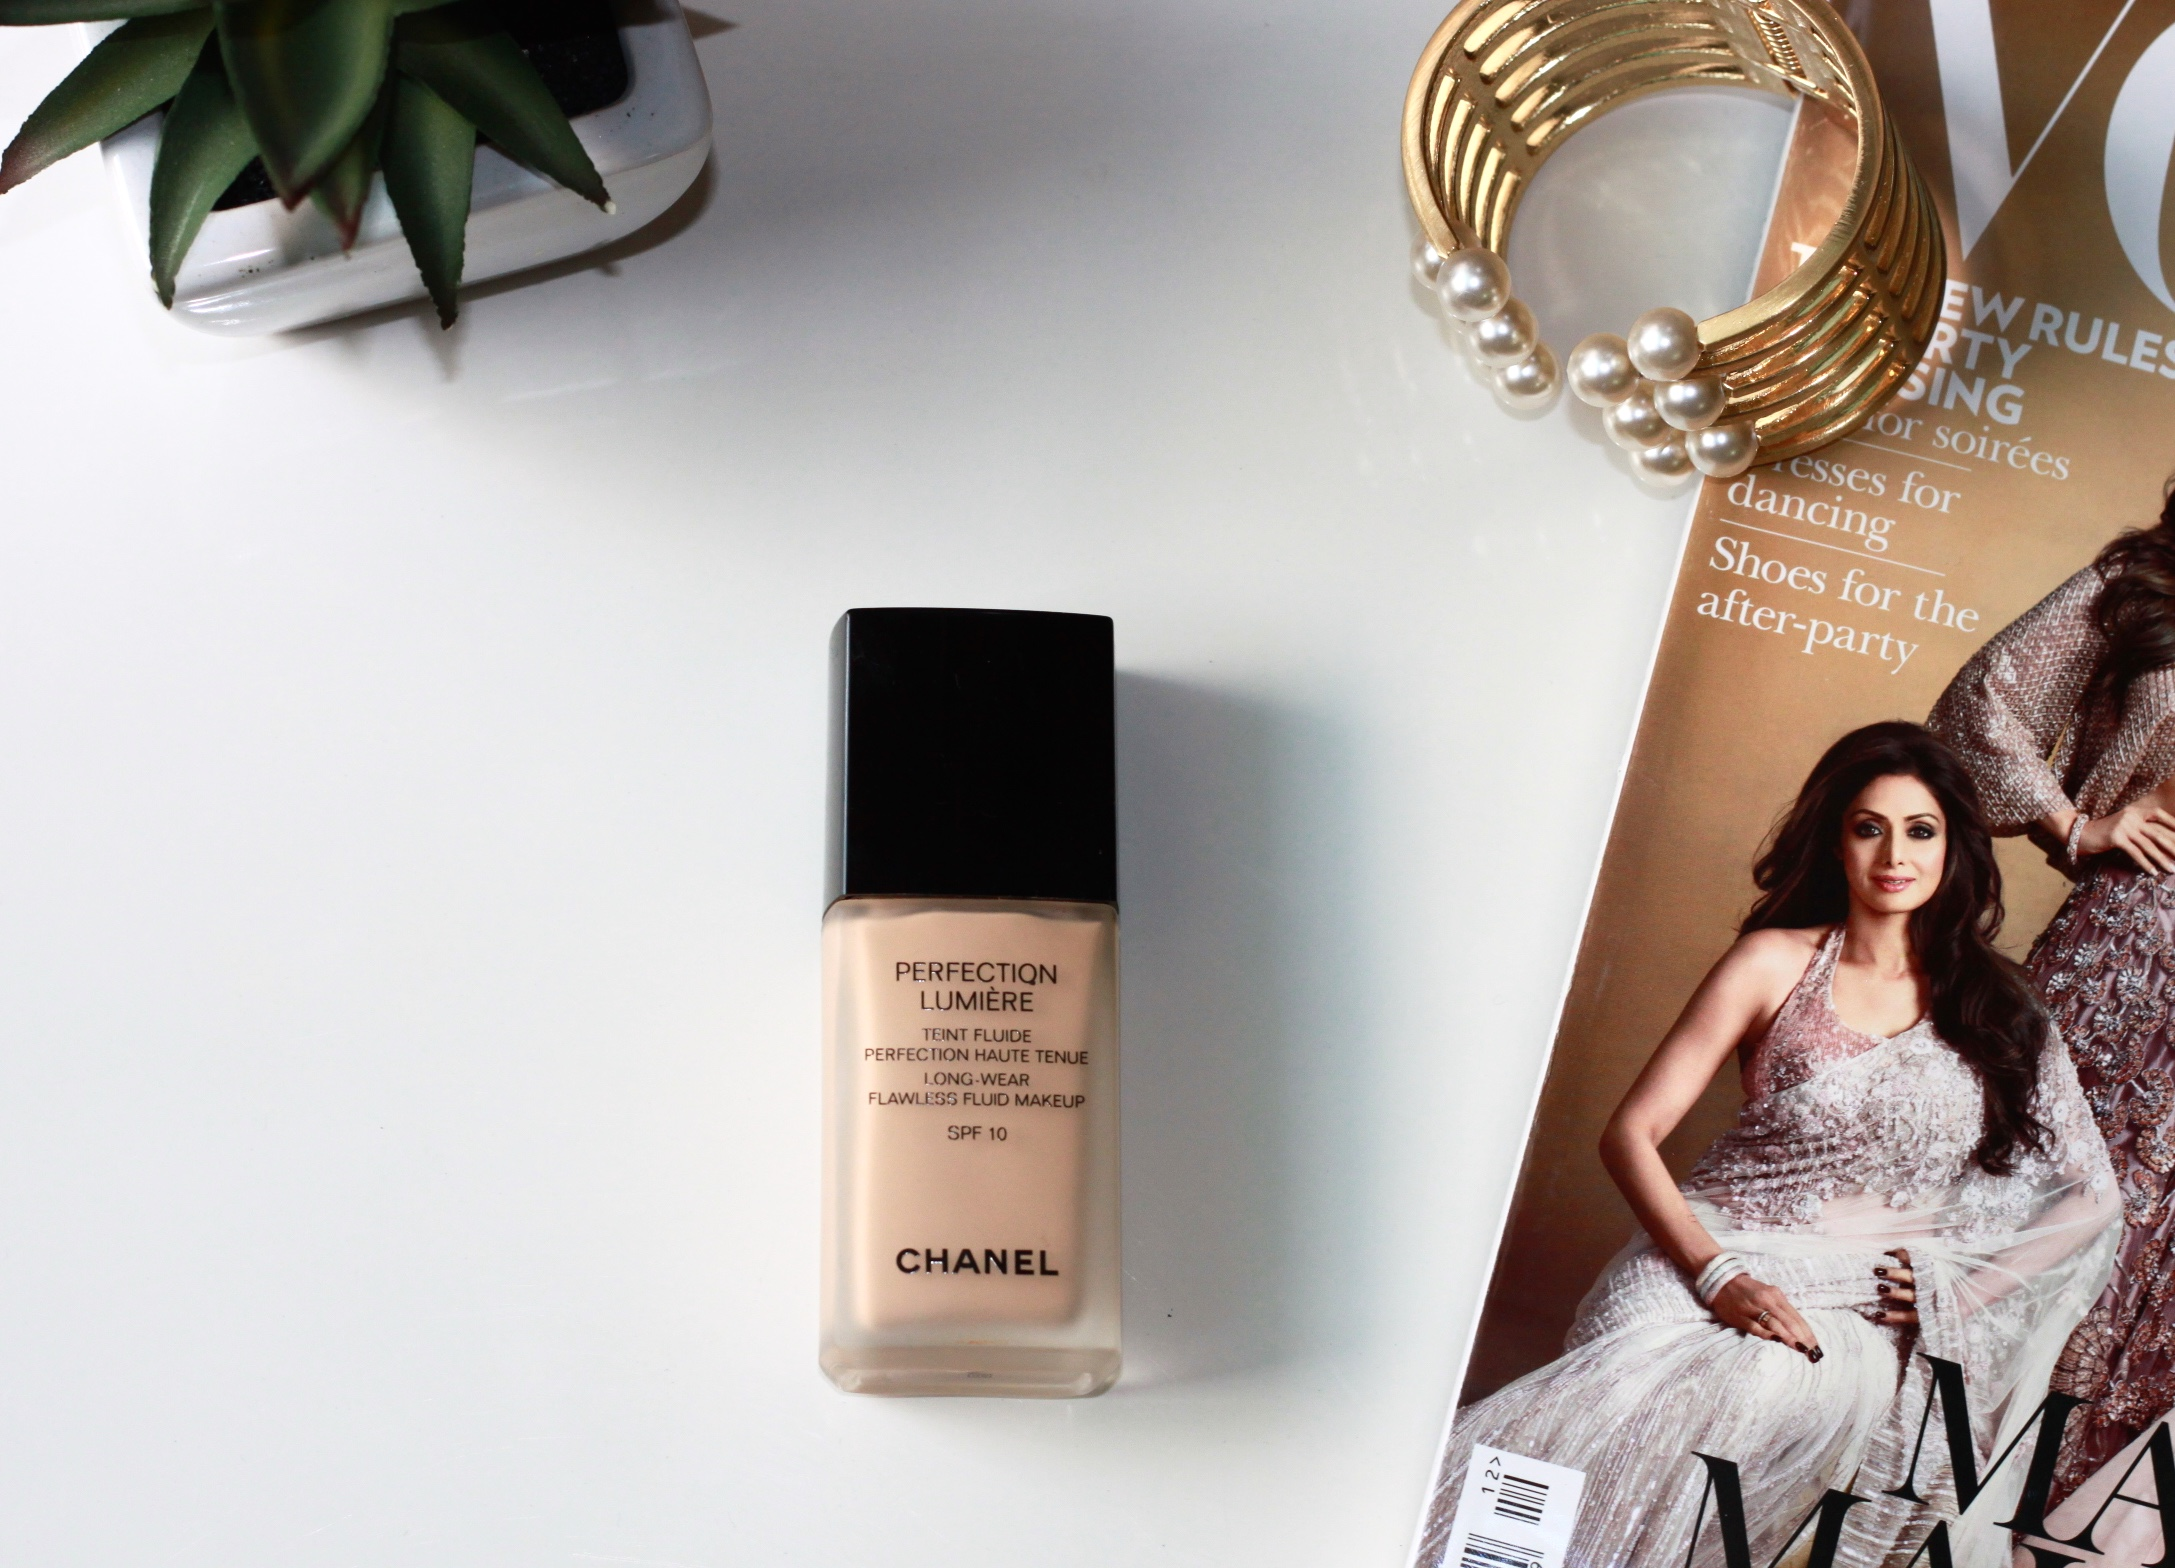 chanel perfection lumiere teint fluide review, chanel foundation, chanel perfection lumiere